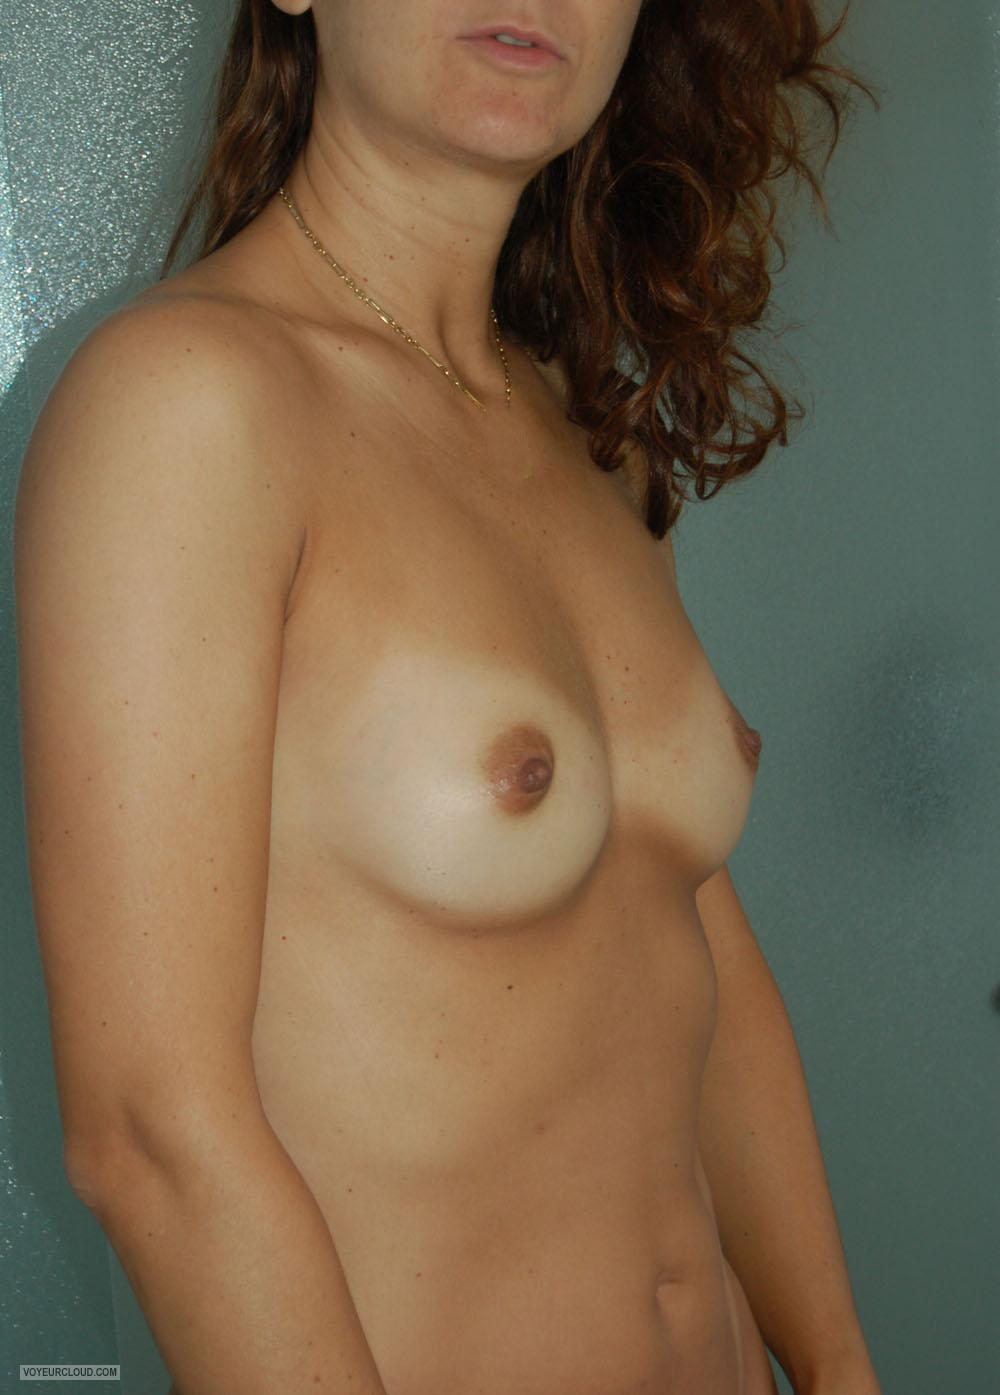 Tit Flash: Wife's Small Tits With Strong Tanlines - Grelly from Canada